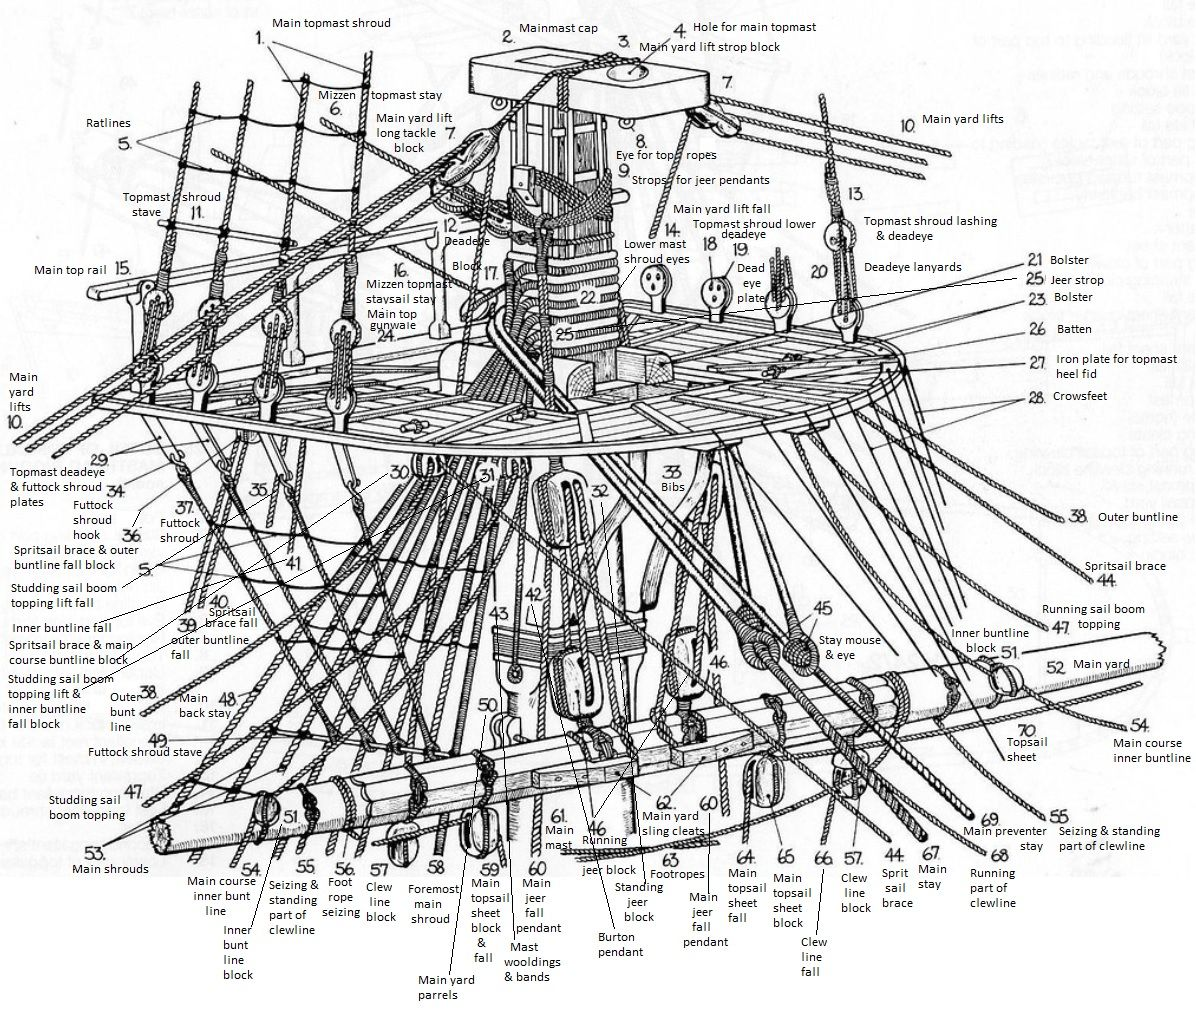 Written Descriptions Of A Detailed Main Mast Diagram Of